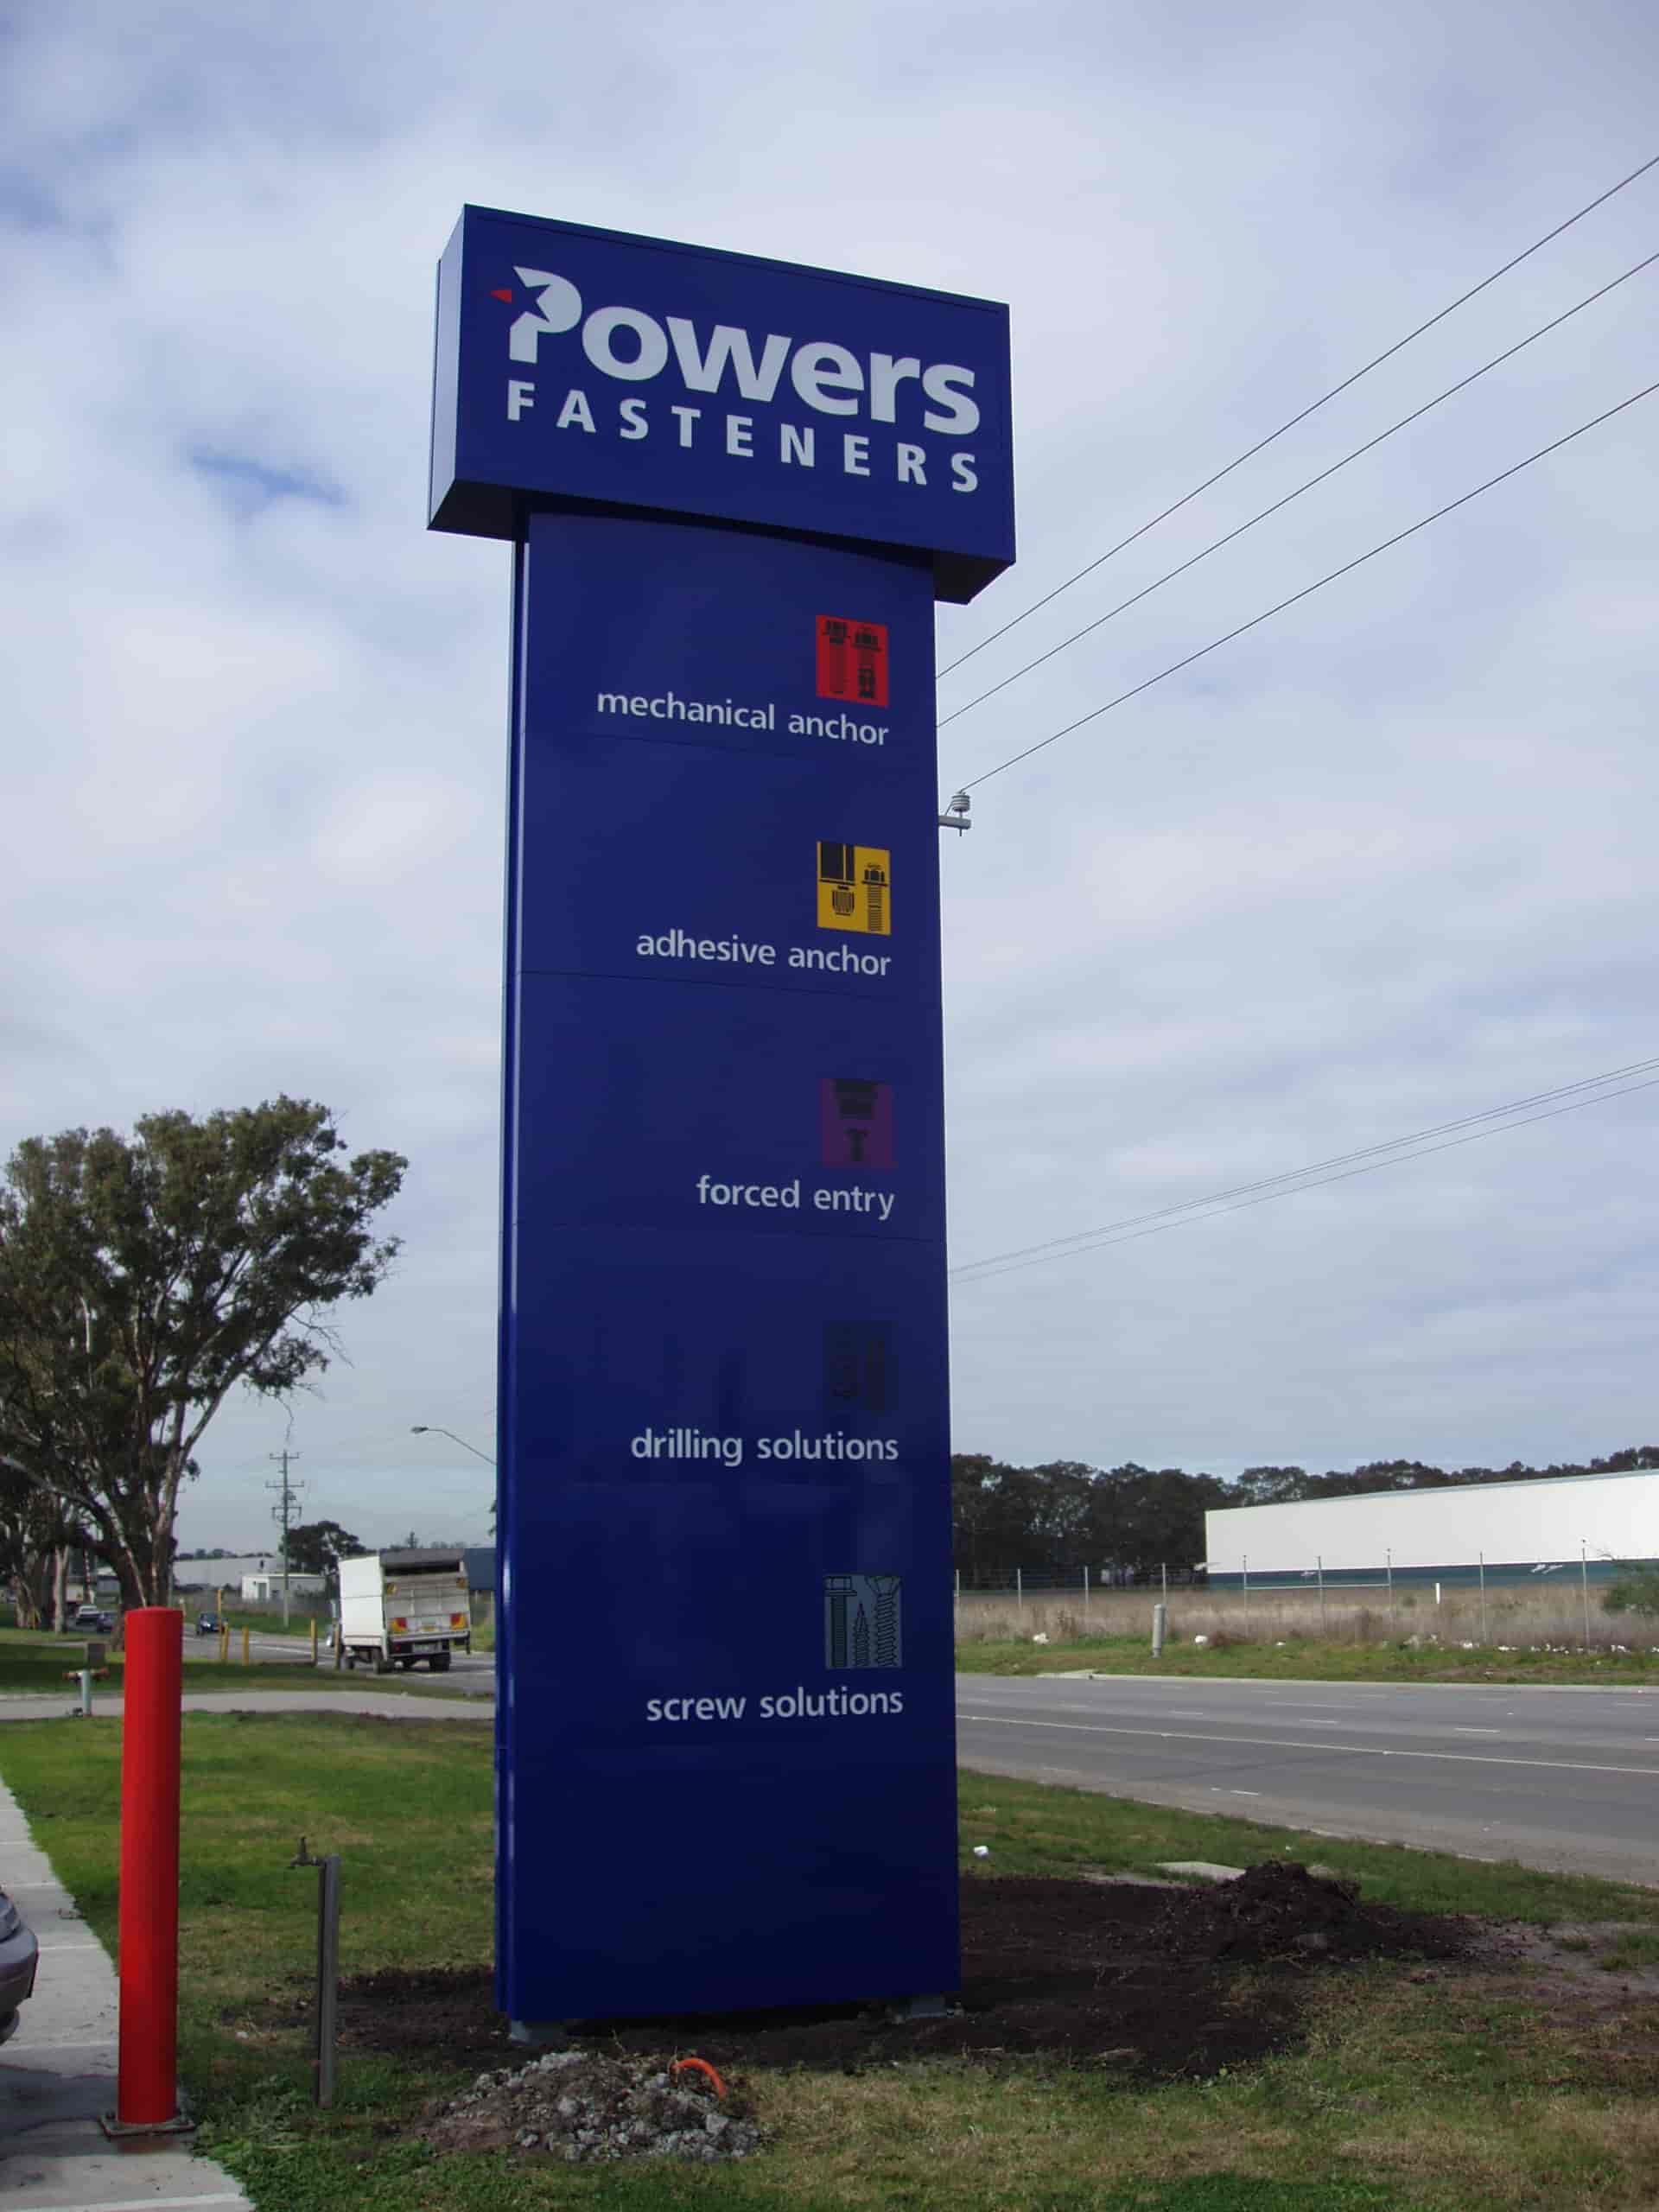 Pylon Signs powers fasteners